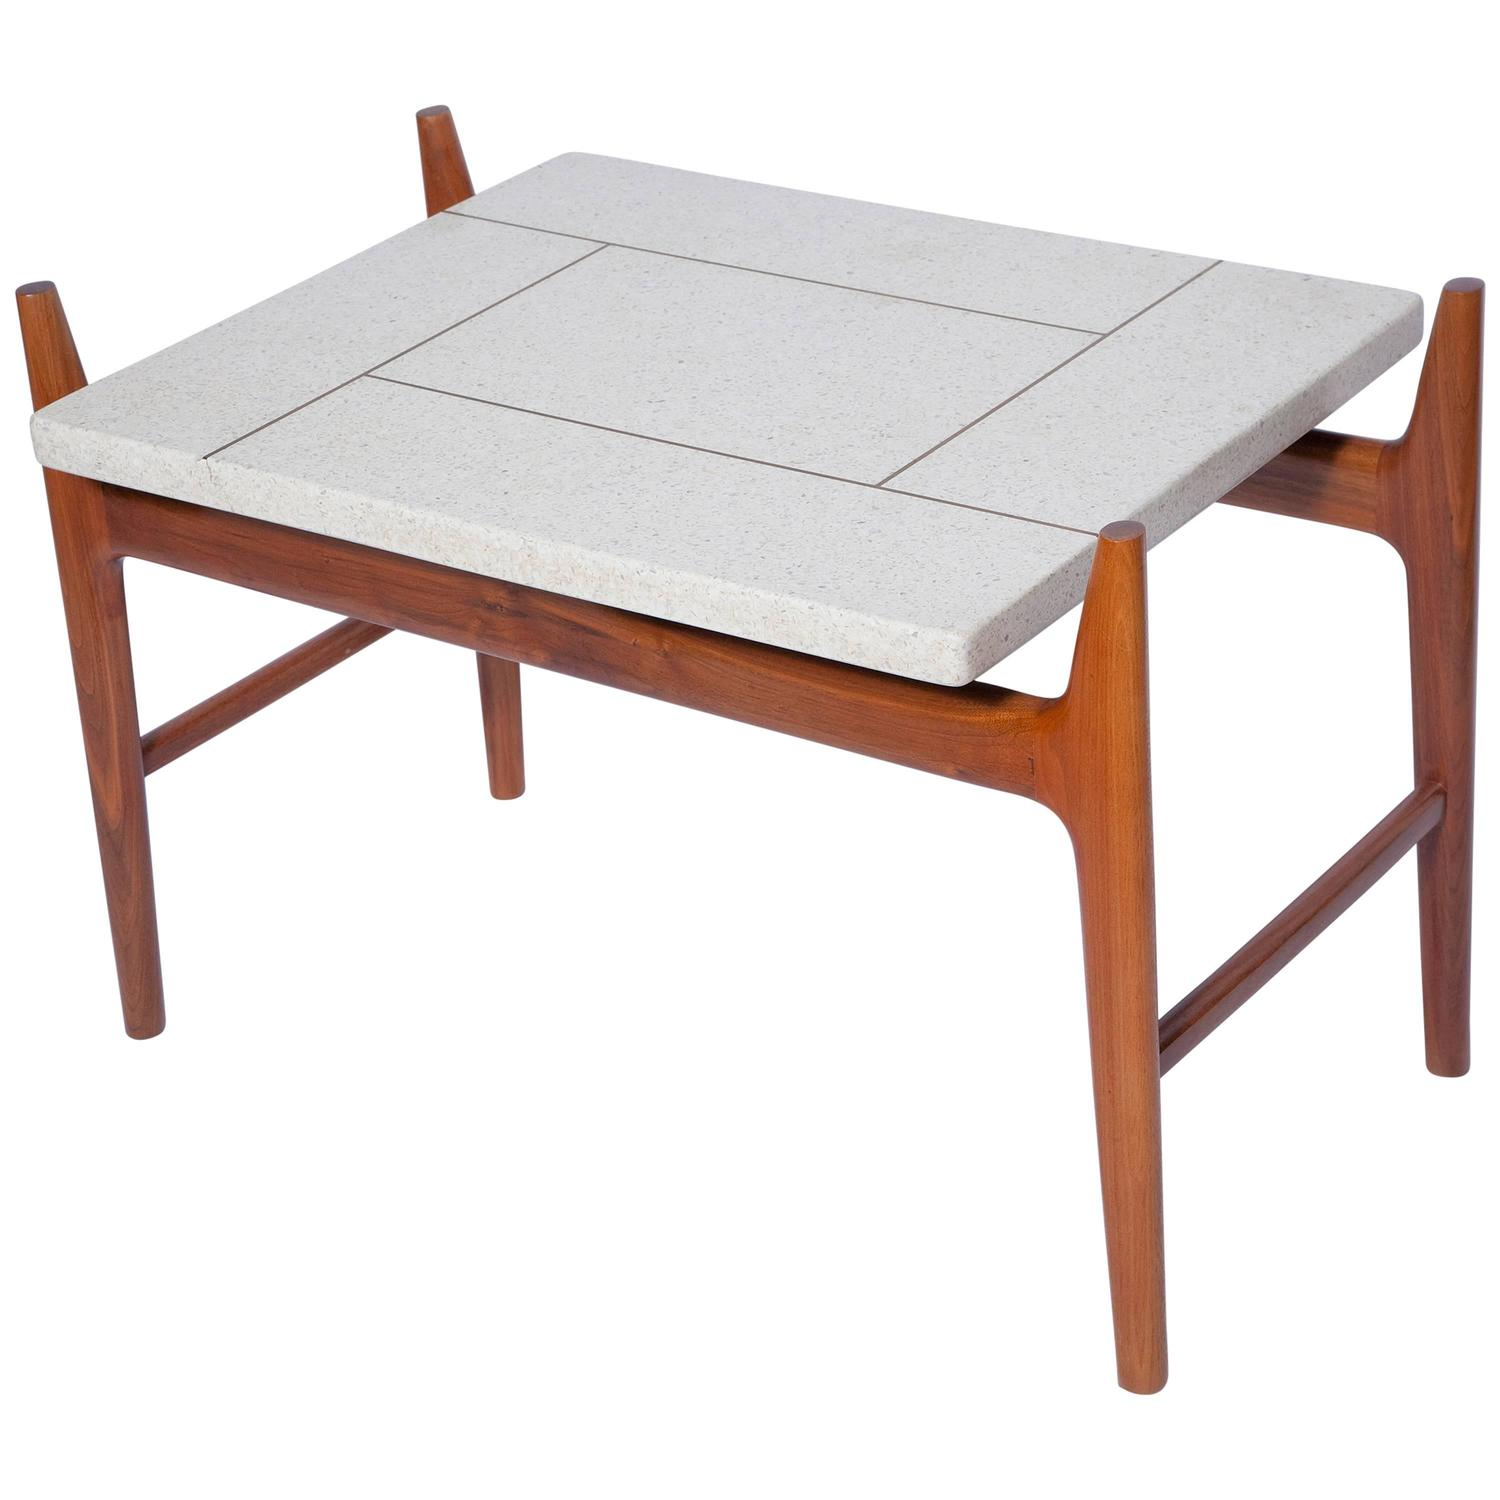 Harvey Probber Teak Table with Brass Inlaid Terrazzo Top at 1stdibs